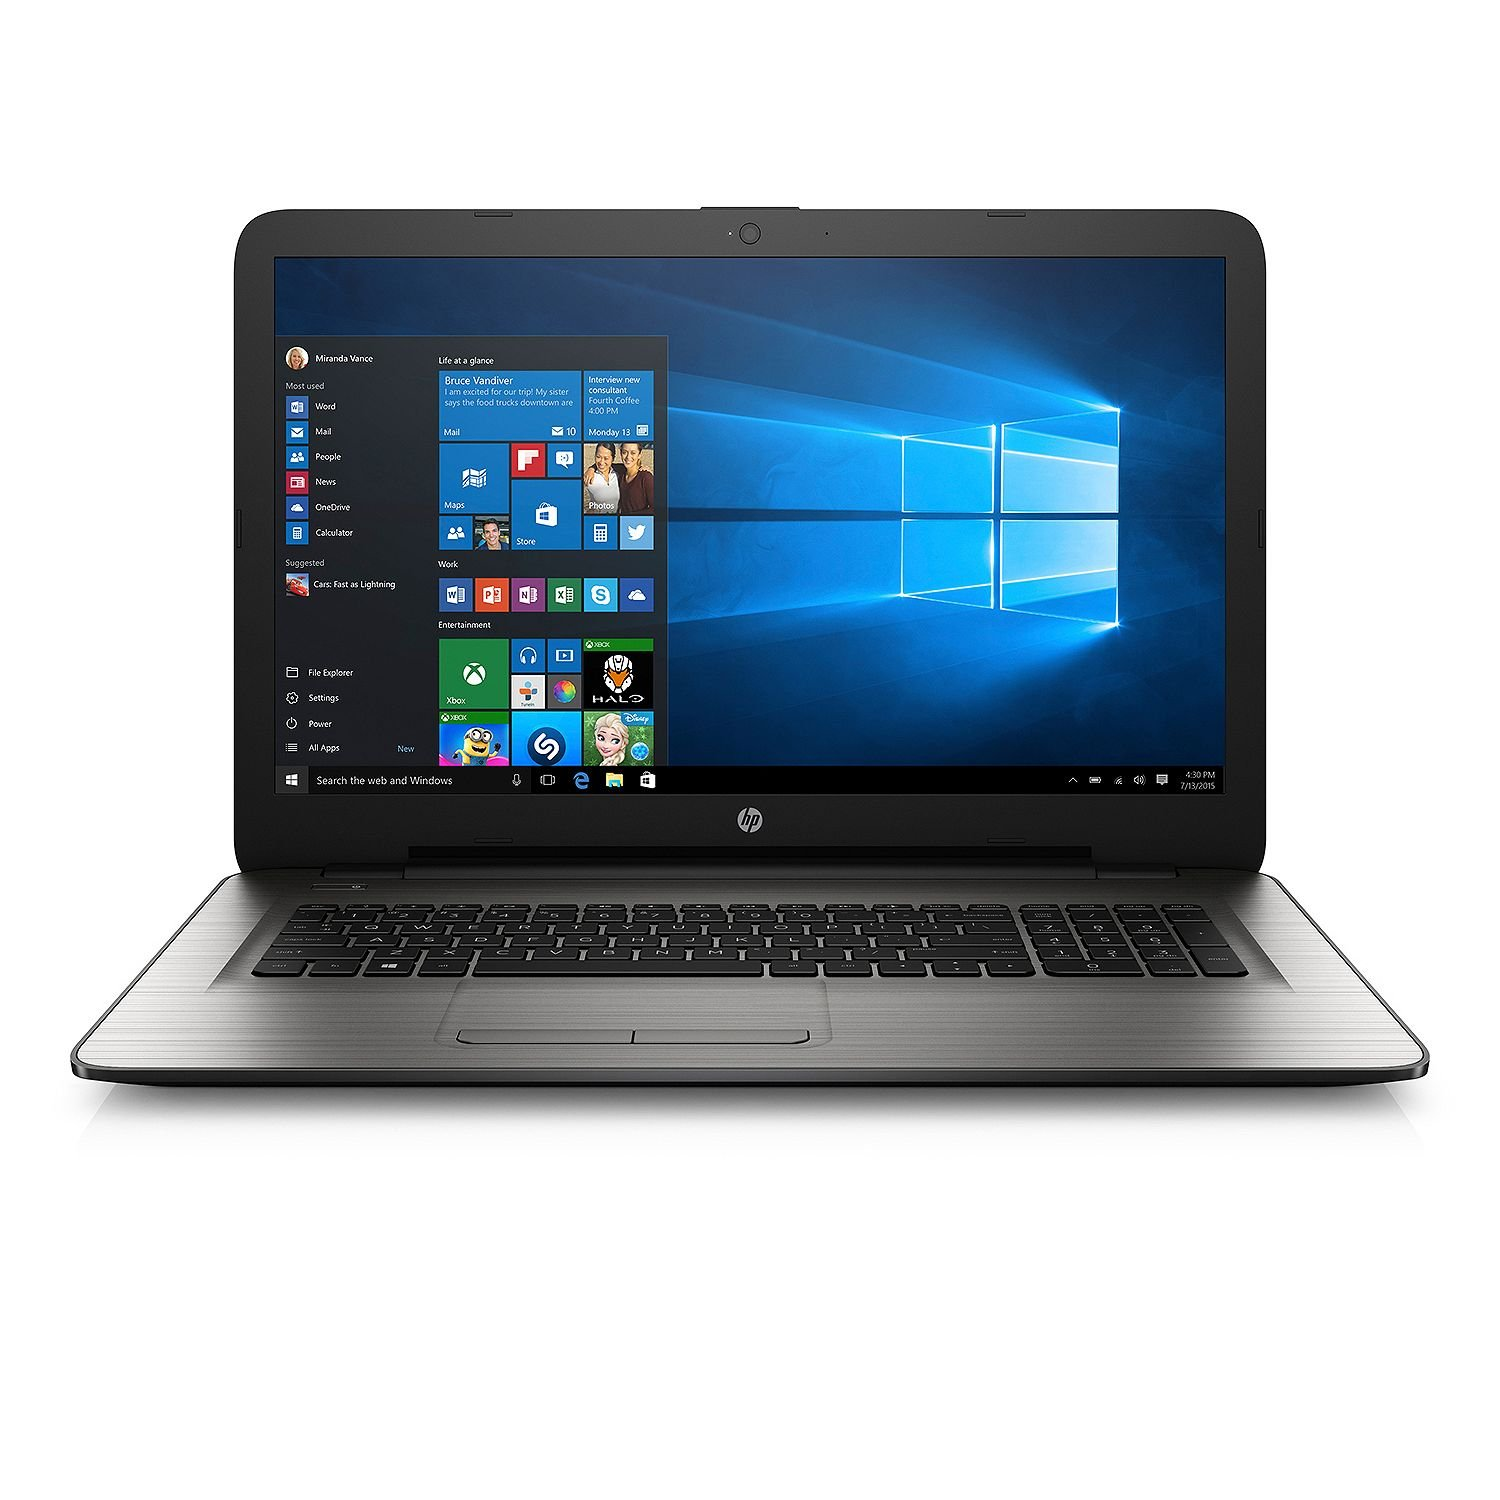 "2017 HP Full HD IPS 17.3"" Notebook 17-x137cl, Intel Core i7-7500U Processor, 16GB Memory, 2TB Hard Drive, DVDRW, AMD R7 M440 4GB Graphics, HD Webcam, Backlit Keyboard, Windows 10 Home"